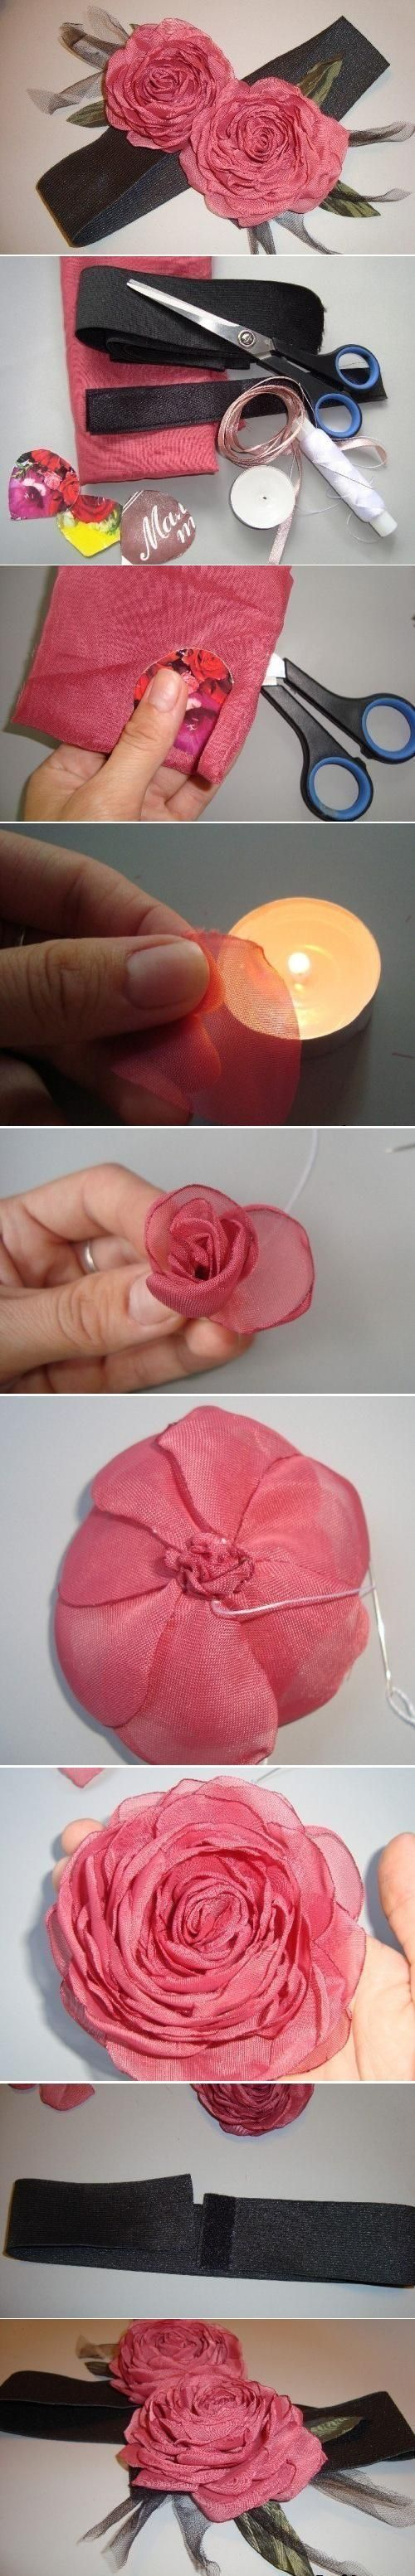 DIY Organza Rose Headband via usefuldiy.com: